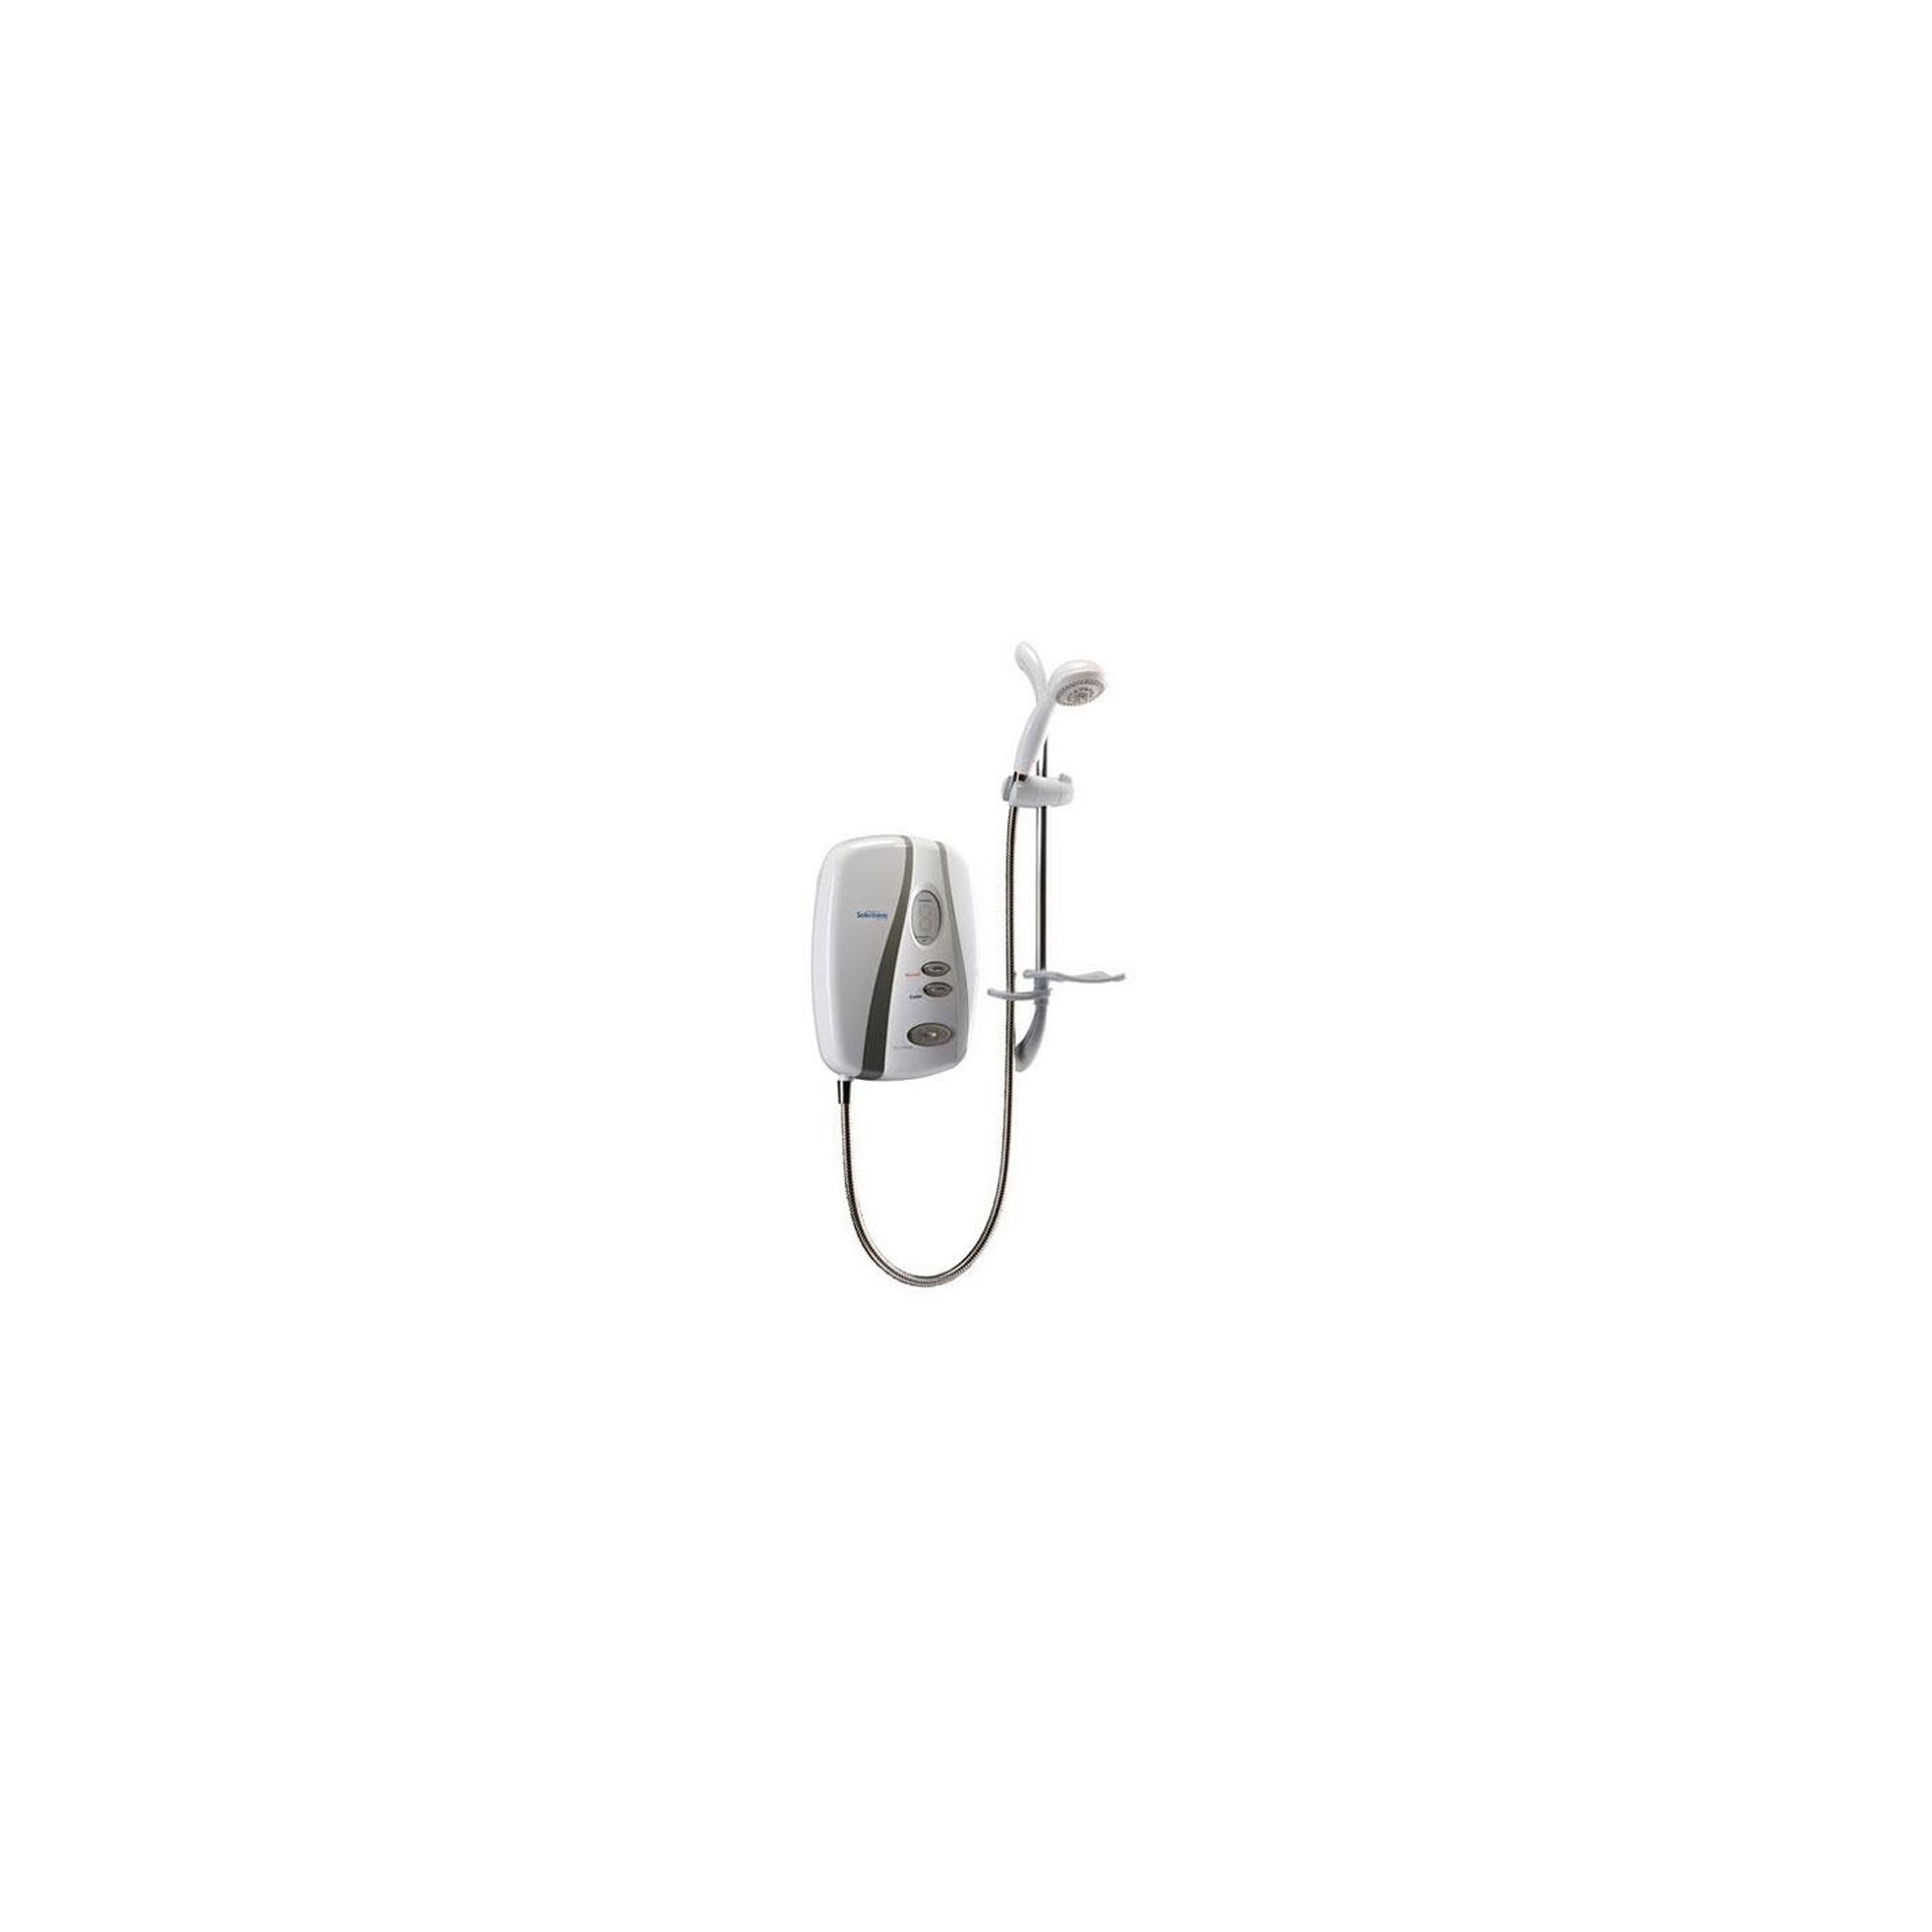 Redring Selectronic Premier Standard Electric Shower White/Chrome 9.5kW at Tesco Direct